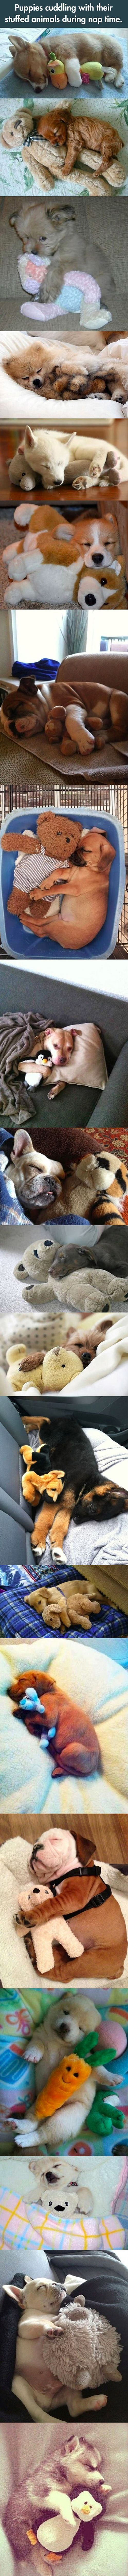 best cute photos images on pinterest pets wild animals and